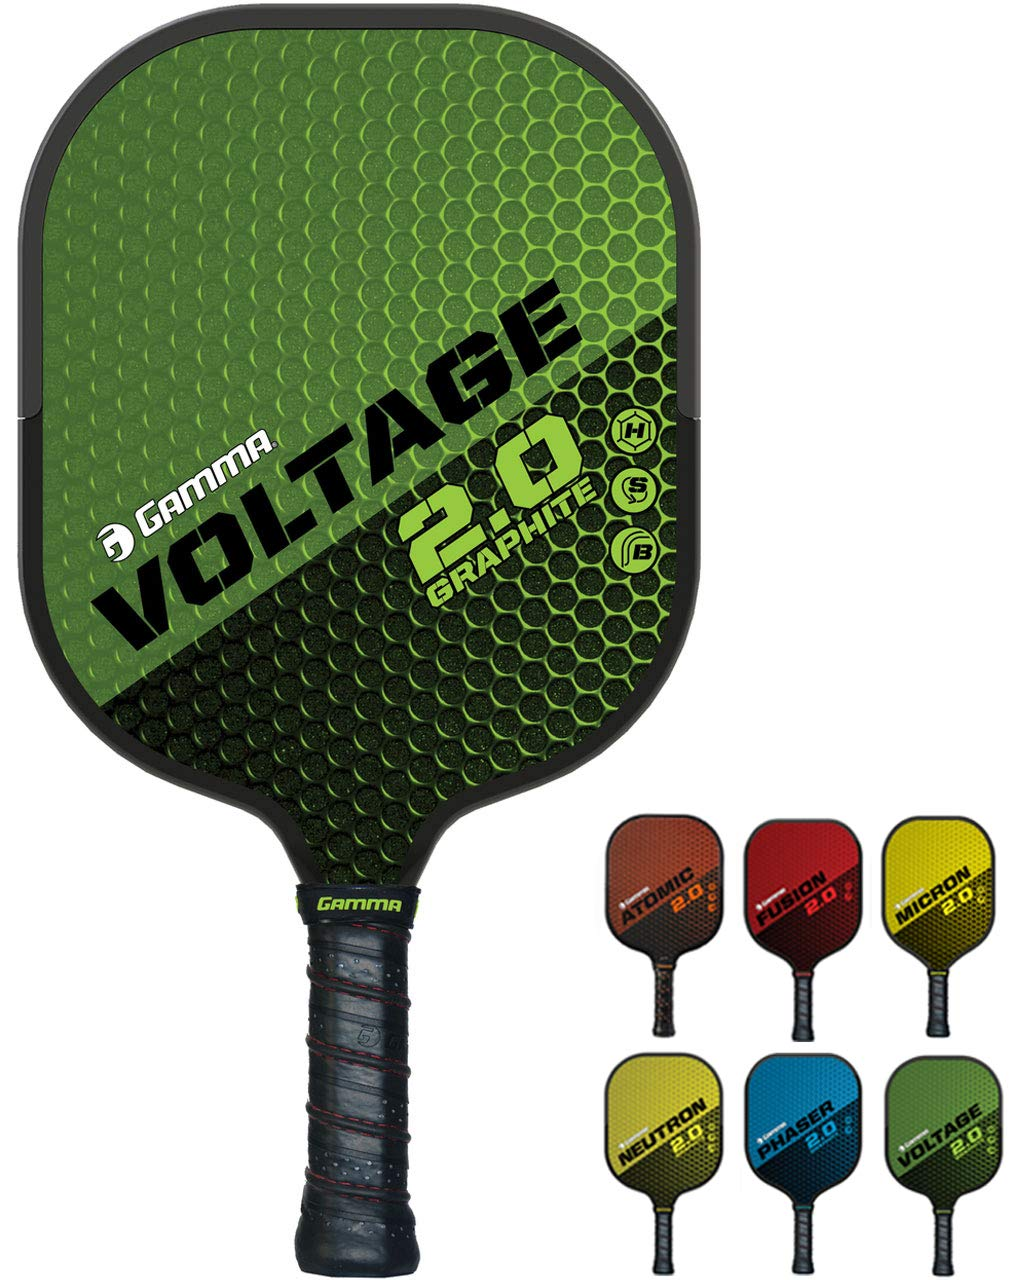 GAMMA Sports 2.0 Pickleball Paddles: Voltage 2.0 Pickleball Rackets - Textured Graphite Face - Mens and Womens Pickle Ball Racquet - Indoor and Outdoor Racket - Green Pickle-Ball Paddle - 7.6 oz by Gamma